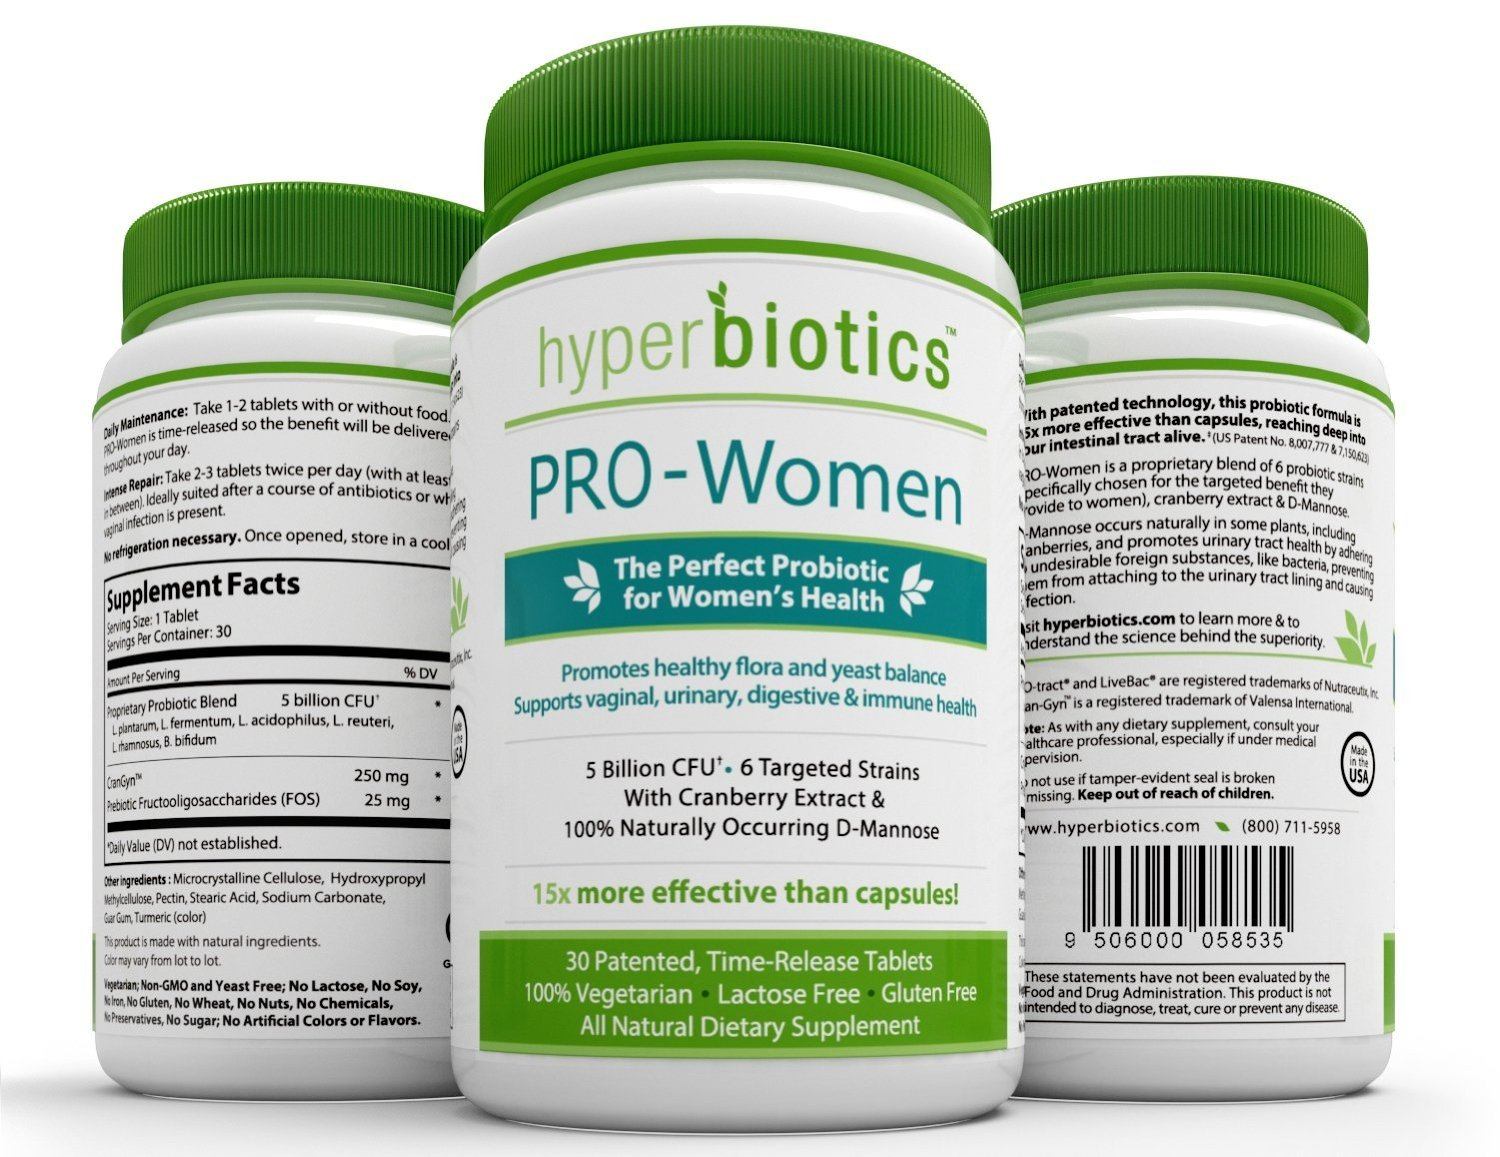 Hyperbiotics PRO-Women with Cranberry Extract